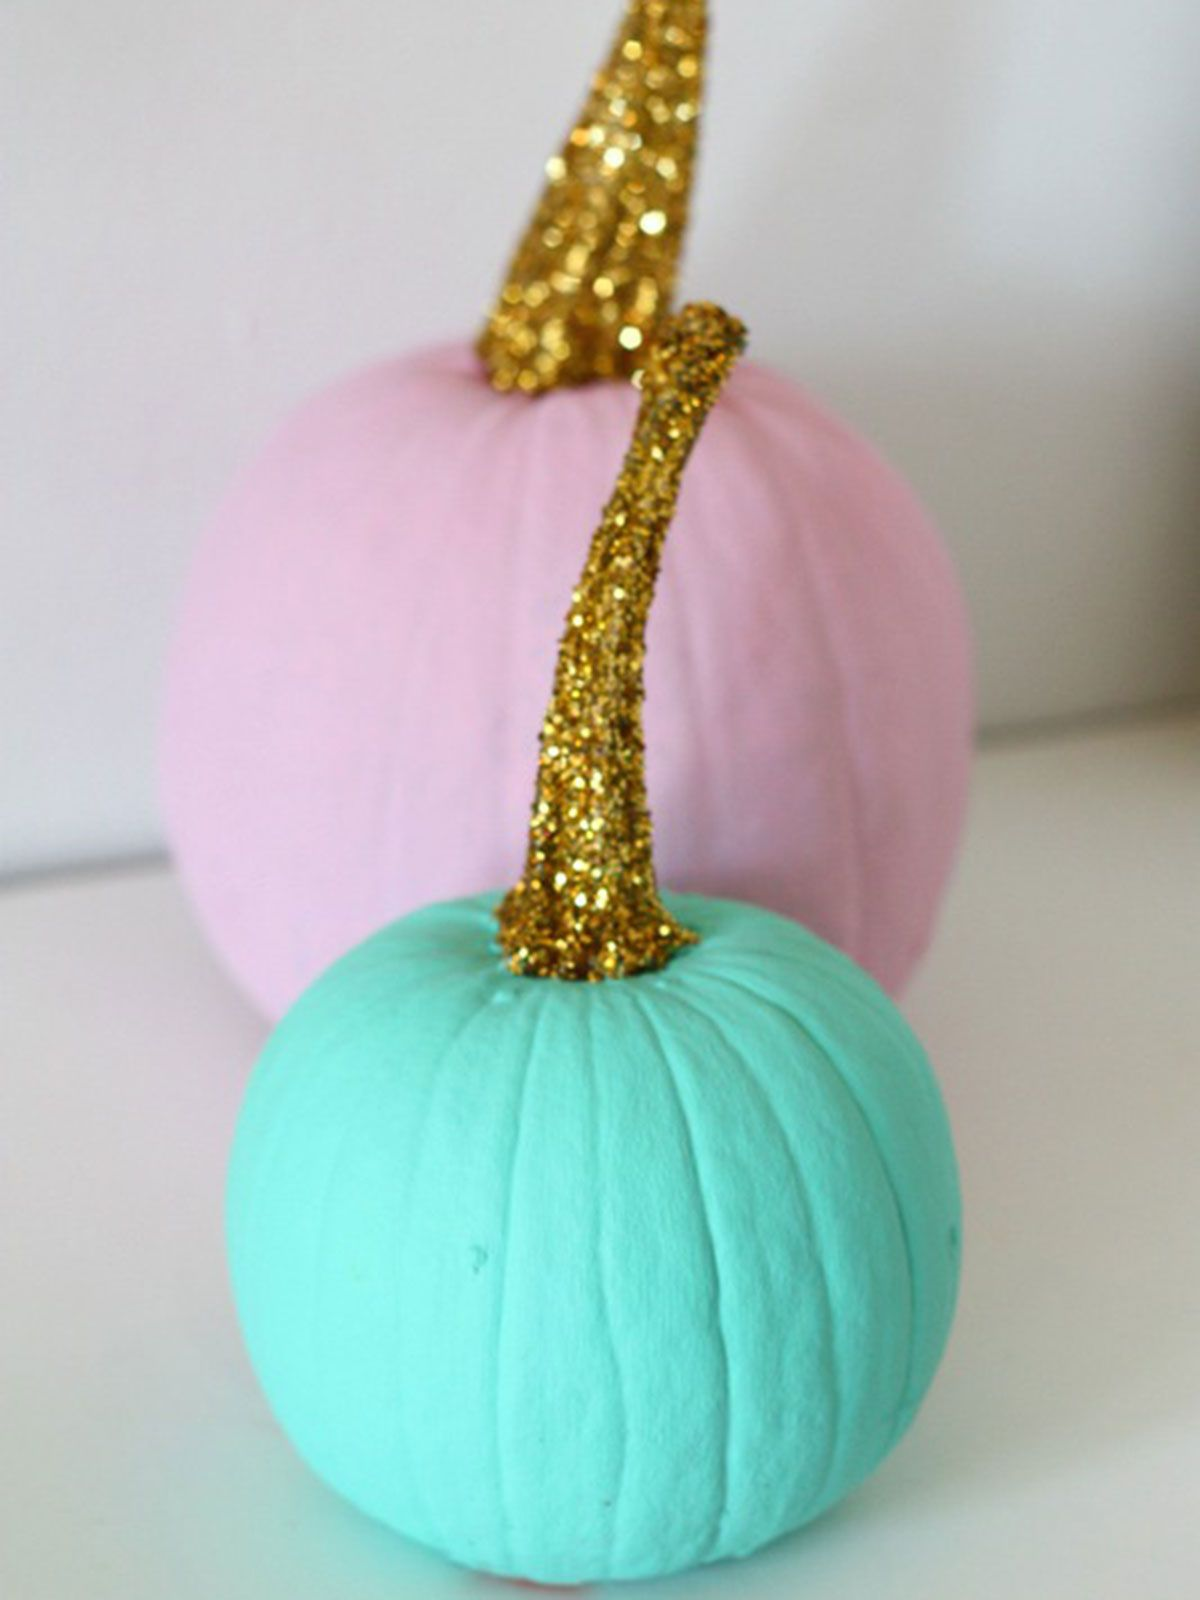 14 Best Glitter Pumpkins Fun Diy Ideas For Decorating With